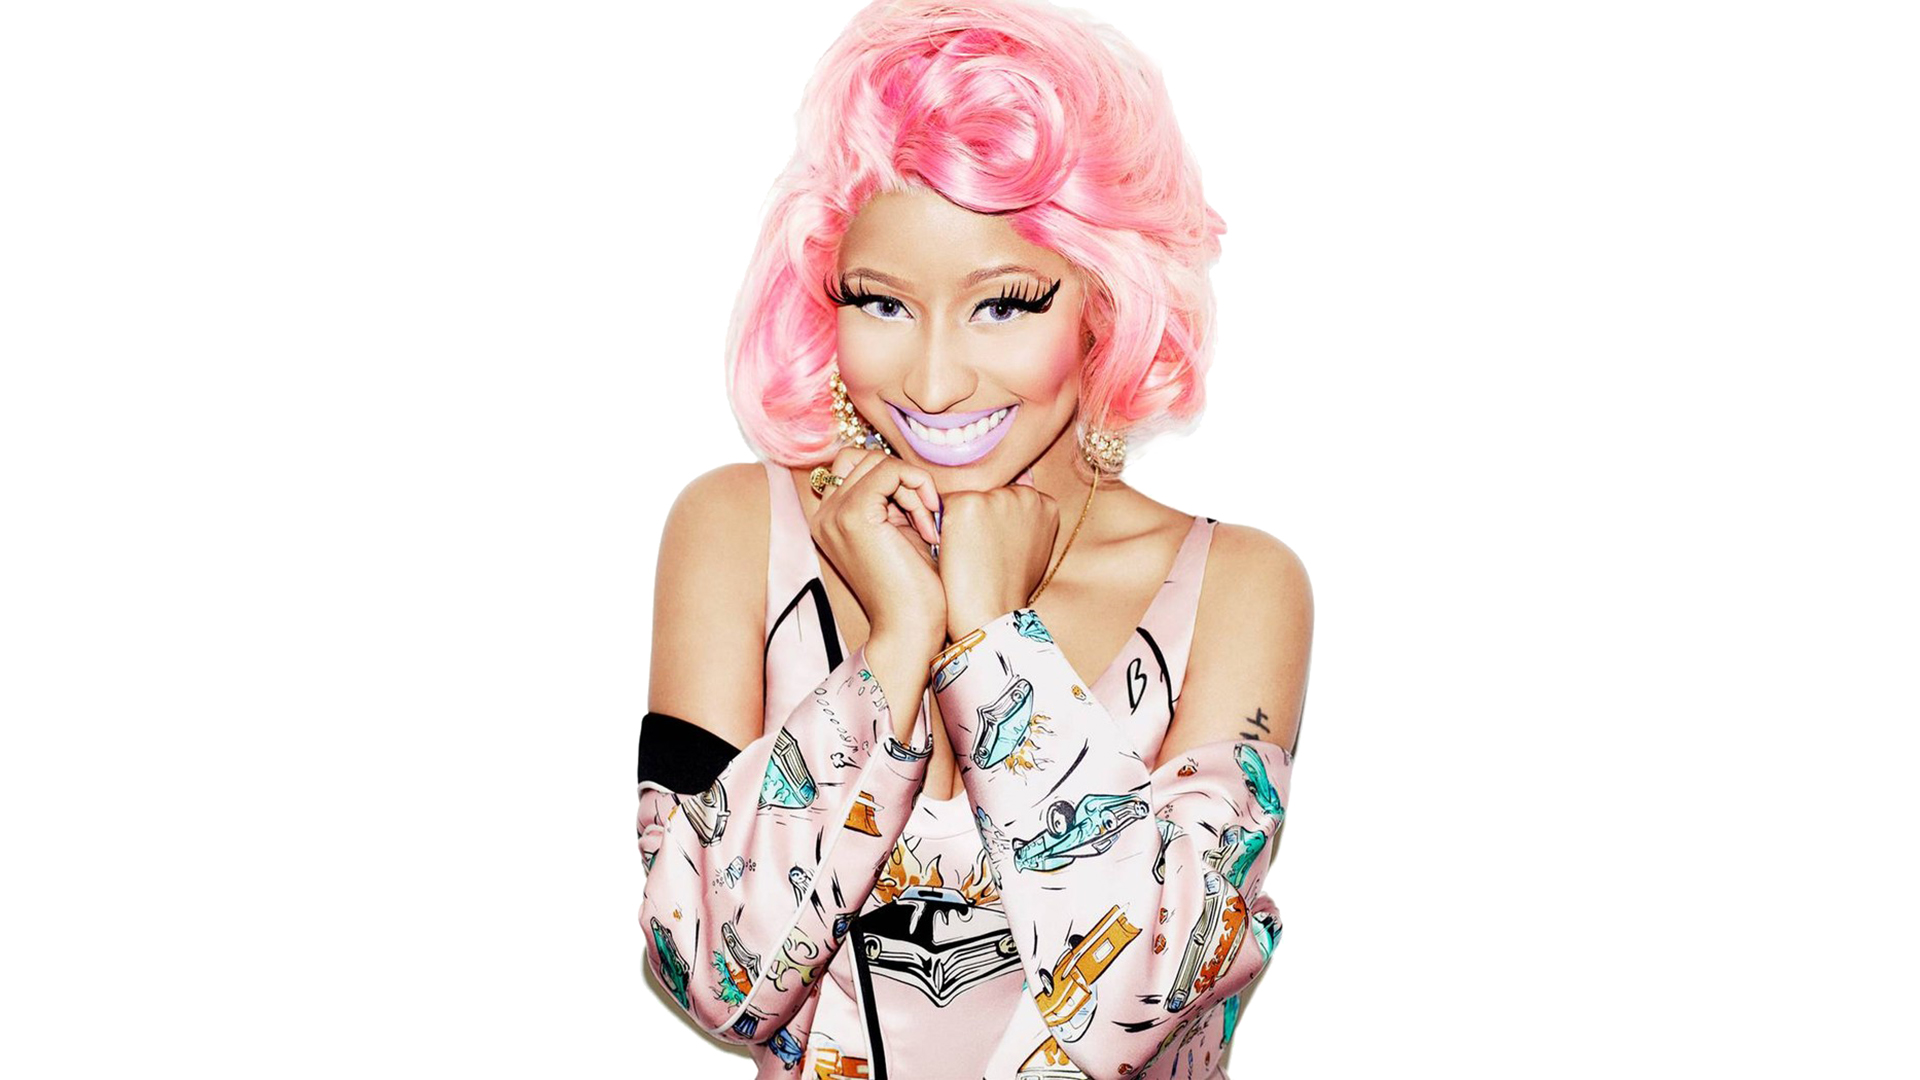 Nicki Minaj Background 1920x1080